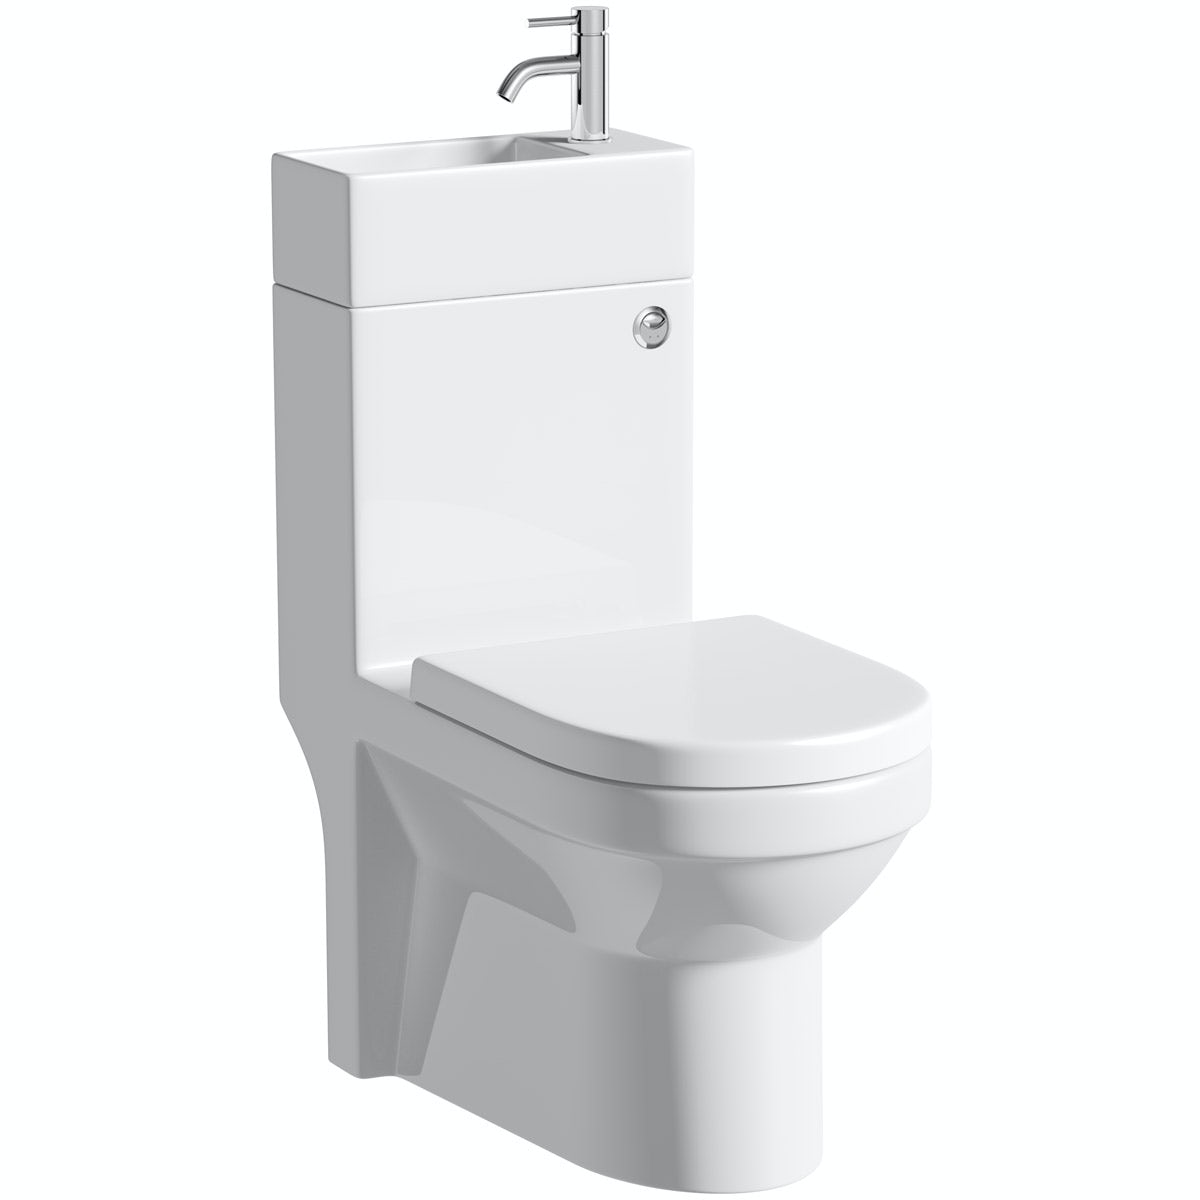 Orchard Wharfe compact all in one toilet and basin unit with tap with waste and pan connector